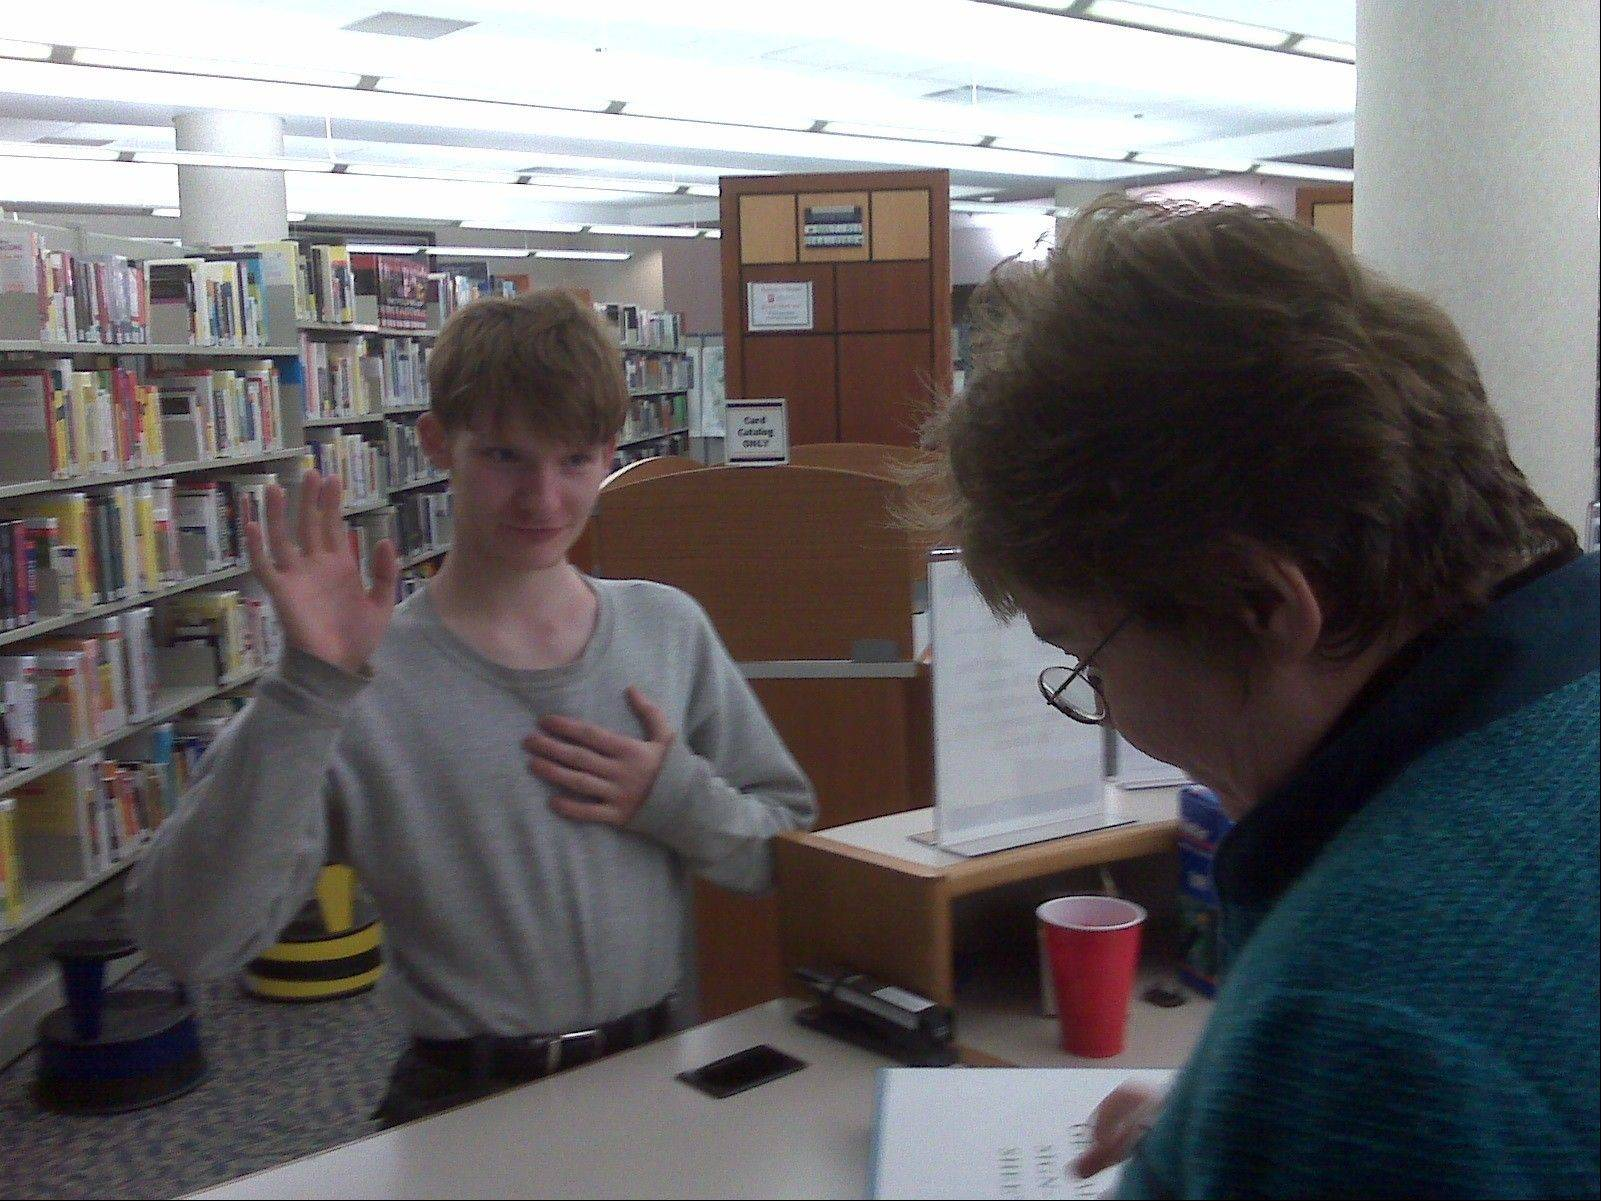 A frequent visitor to libraries, even on vacations, Nick Salvi registers to vote in 2008 at the Fremont Public Library in Mundelein.